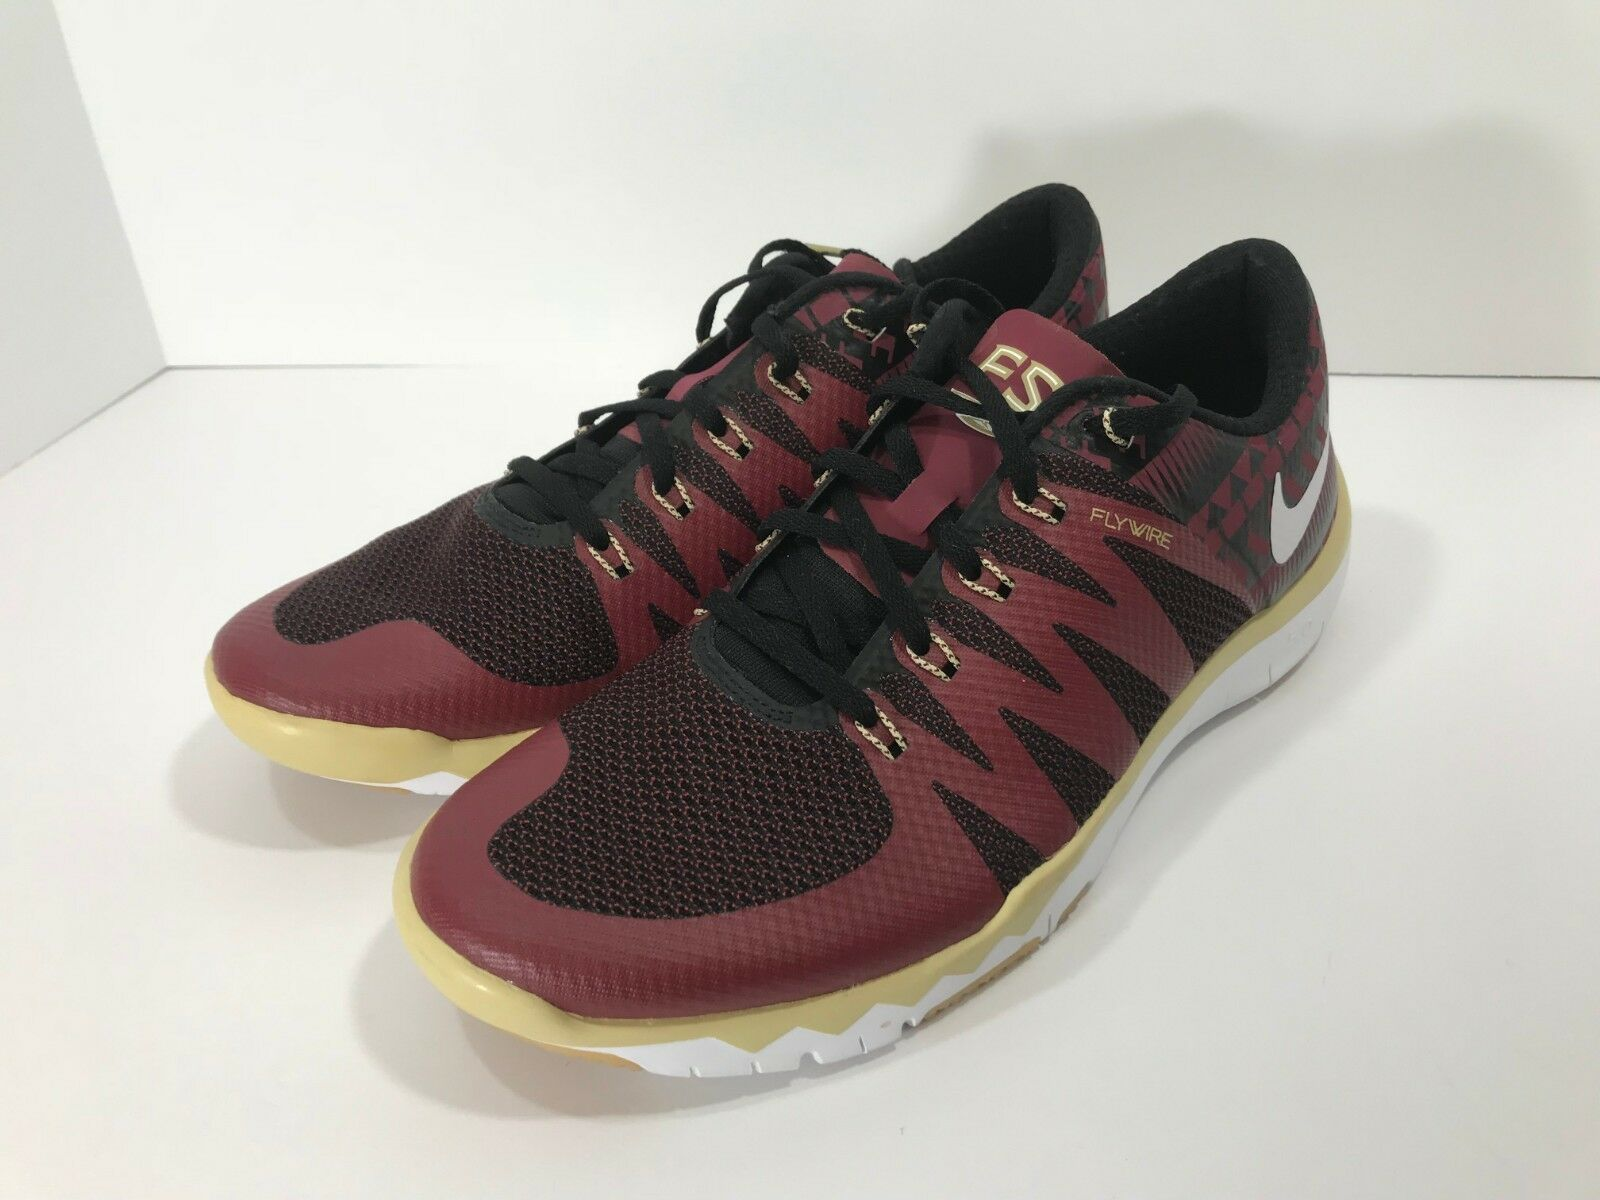 New Nike Free Trainer 5.0 V6 AMP Men's Size 10.5 FSU Seminoles 723939-706